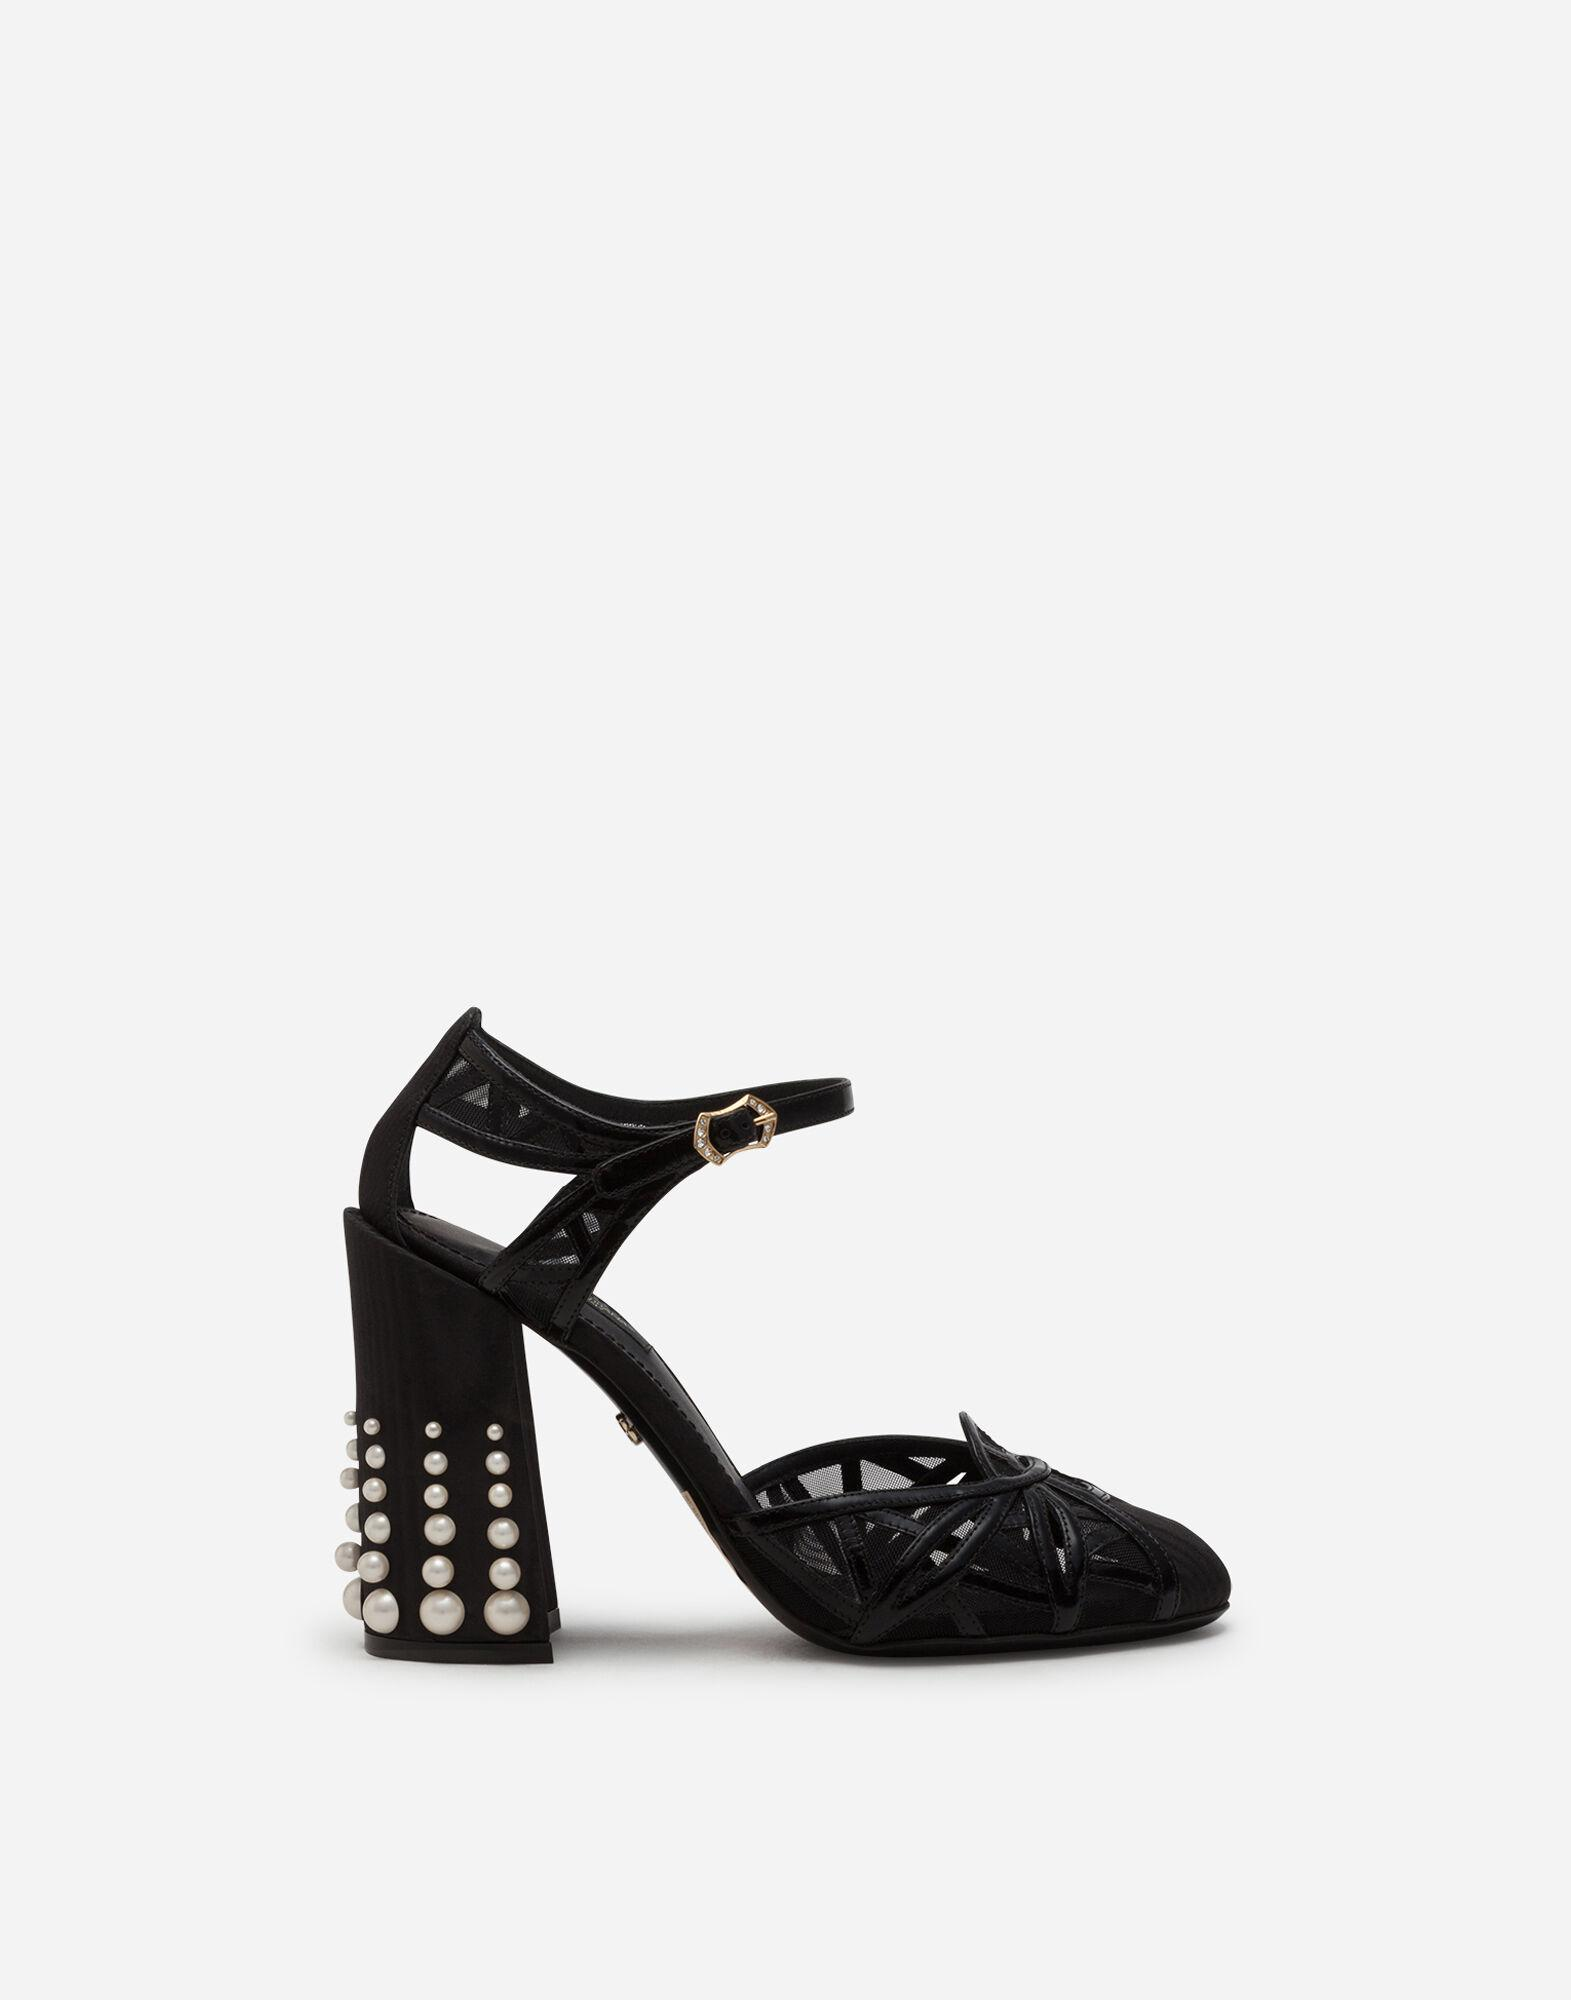 Mixed material ankle strap shoes with pearl embroidery